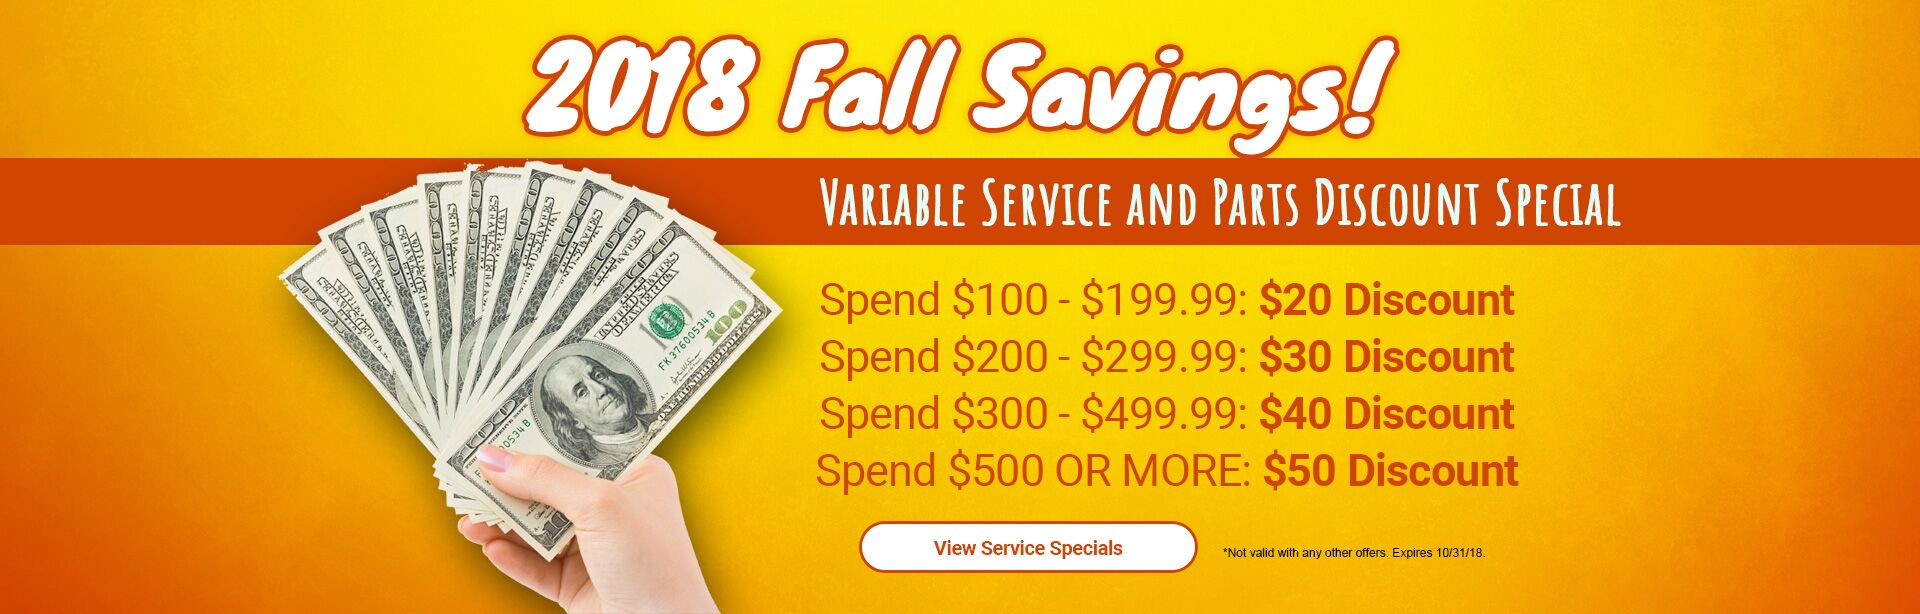 2018 Summer Savings!